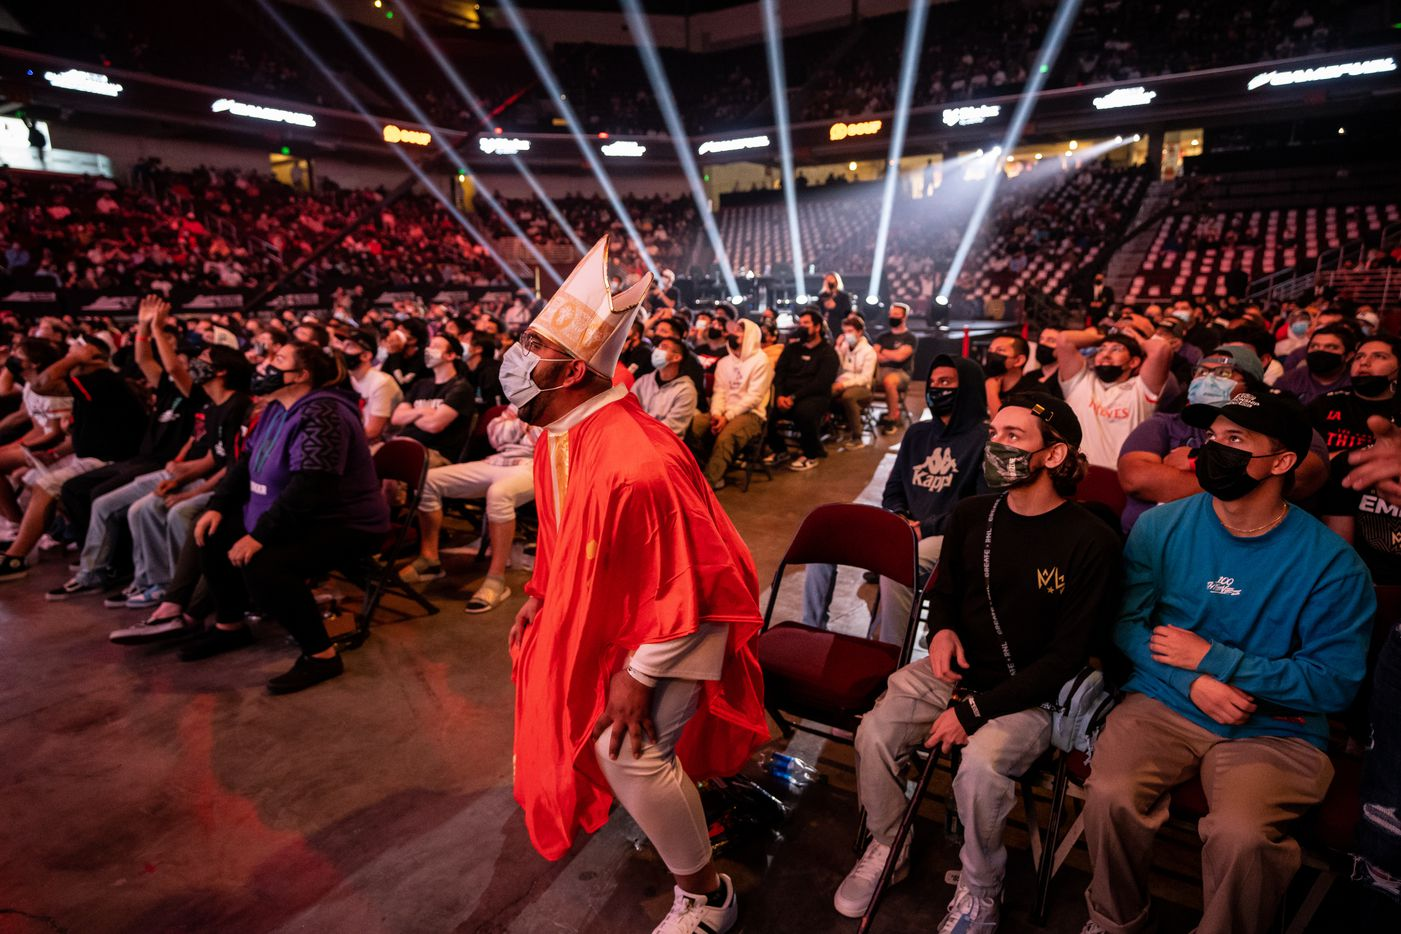 Gurshaan Arora, center, cheers on the Dallas Empire as they play against the Atlanta FaZe during the winners final of the Call of Duty league playoffs at the Galen Center on Saturday, August 21, 2021 in Los Angeles, California. The Empire lost to FaZe 0 - 3 in their first match of the day but are still in contention to play in the finals through the elimination finals. (Justin L. Stewart/Special Contributor)